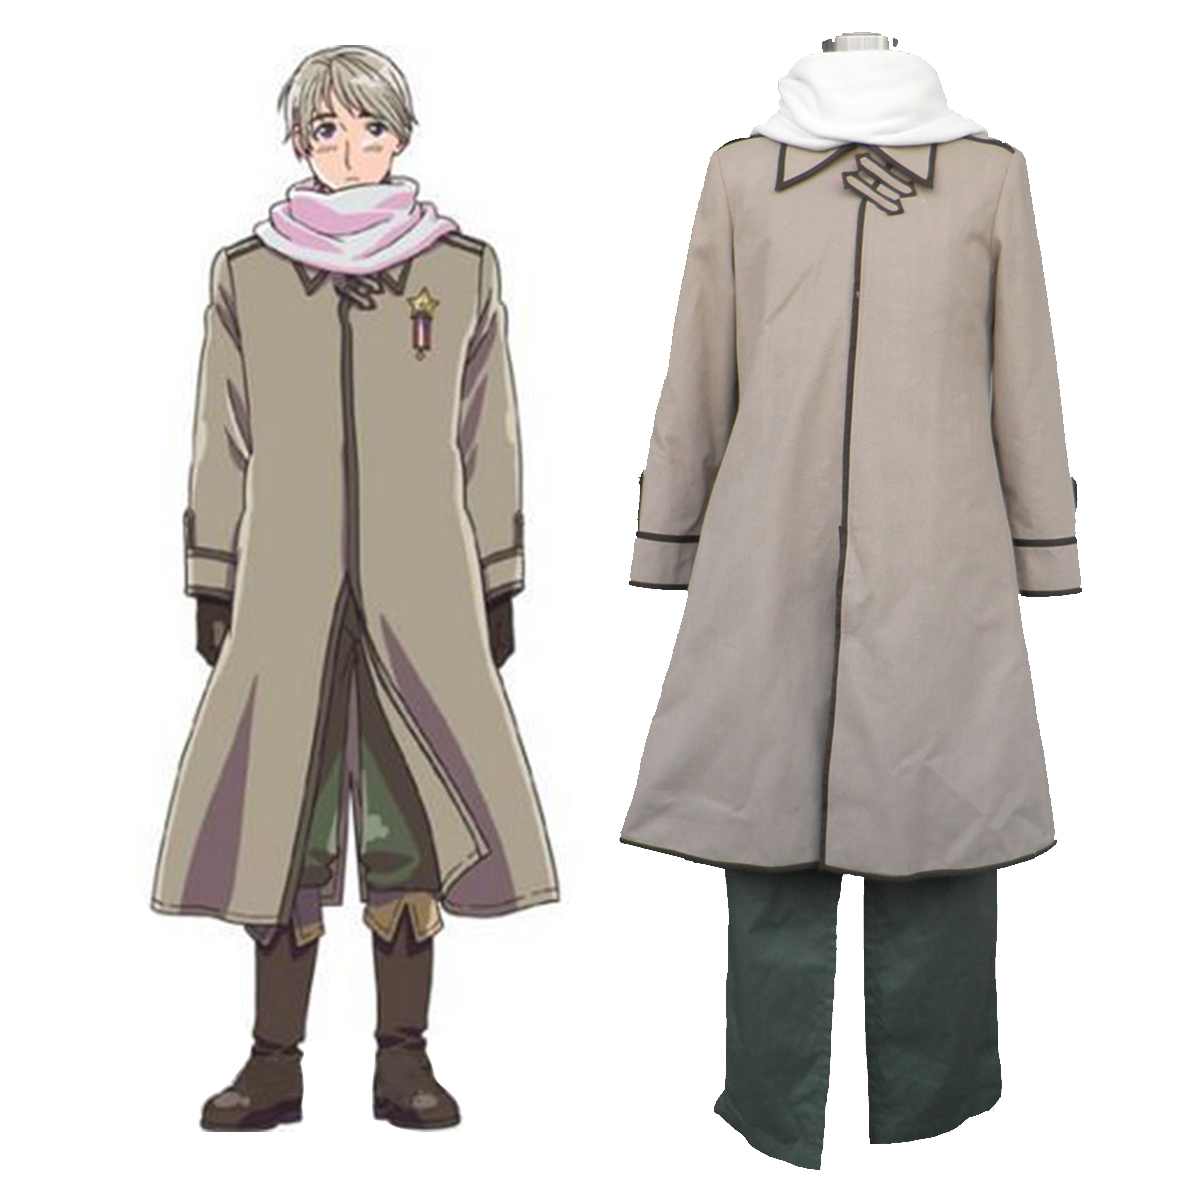 Axis Powers Hetalia APH Russia Ivan Braginski 1 Anime Cosplay Costumes Outfit